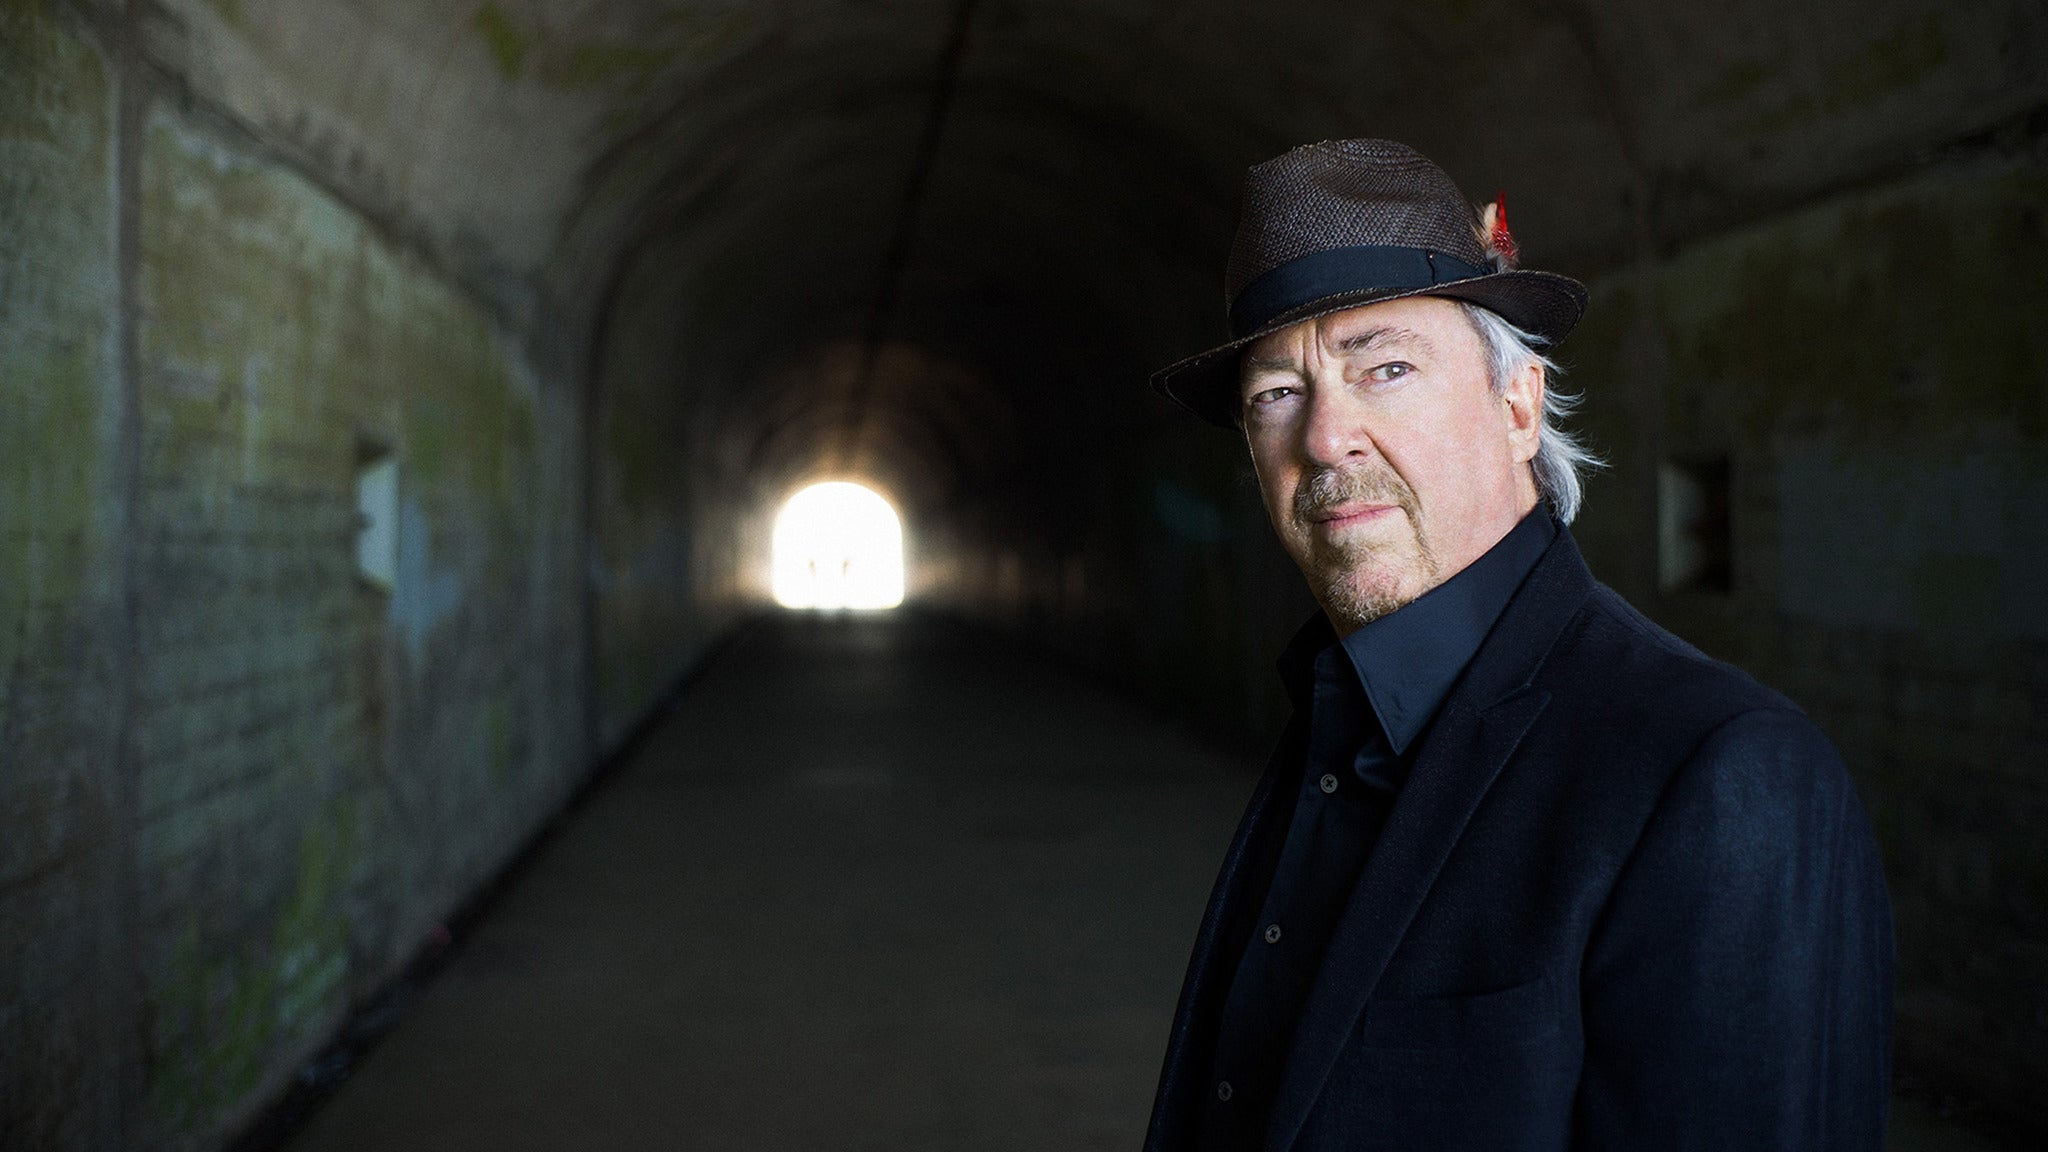 Boz Scaggs at Sunset Center